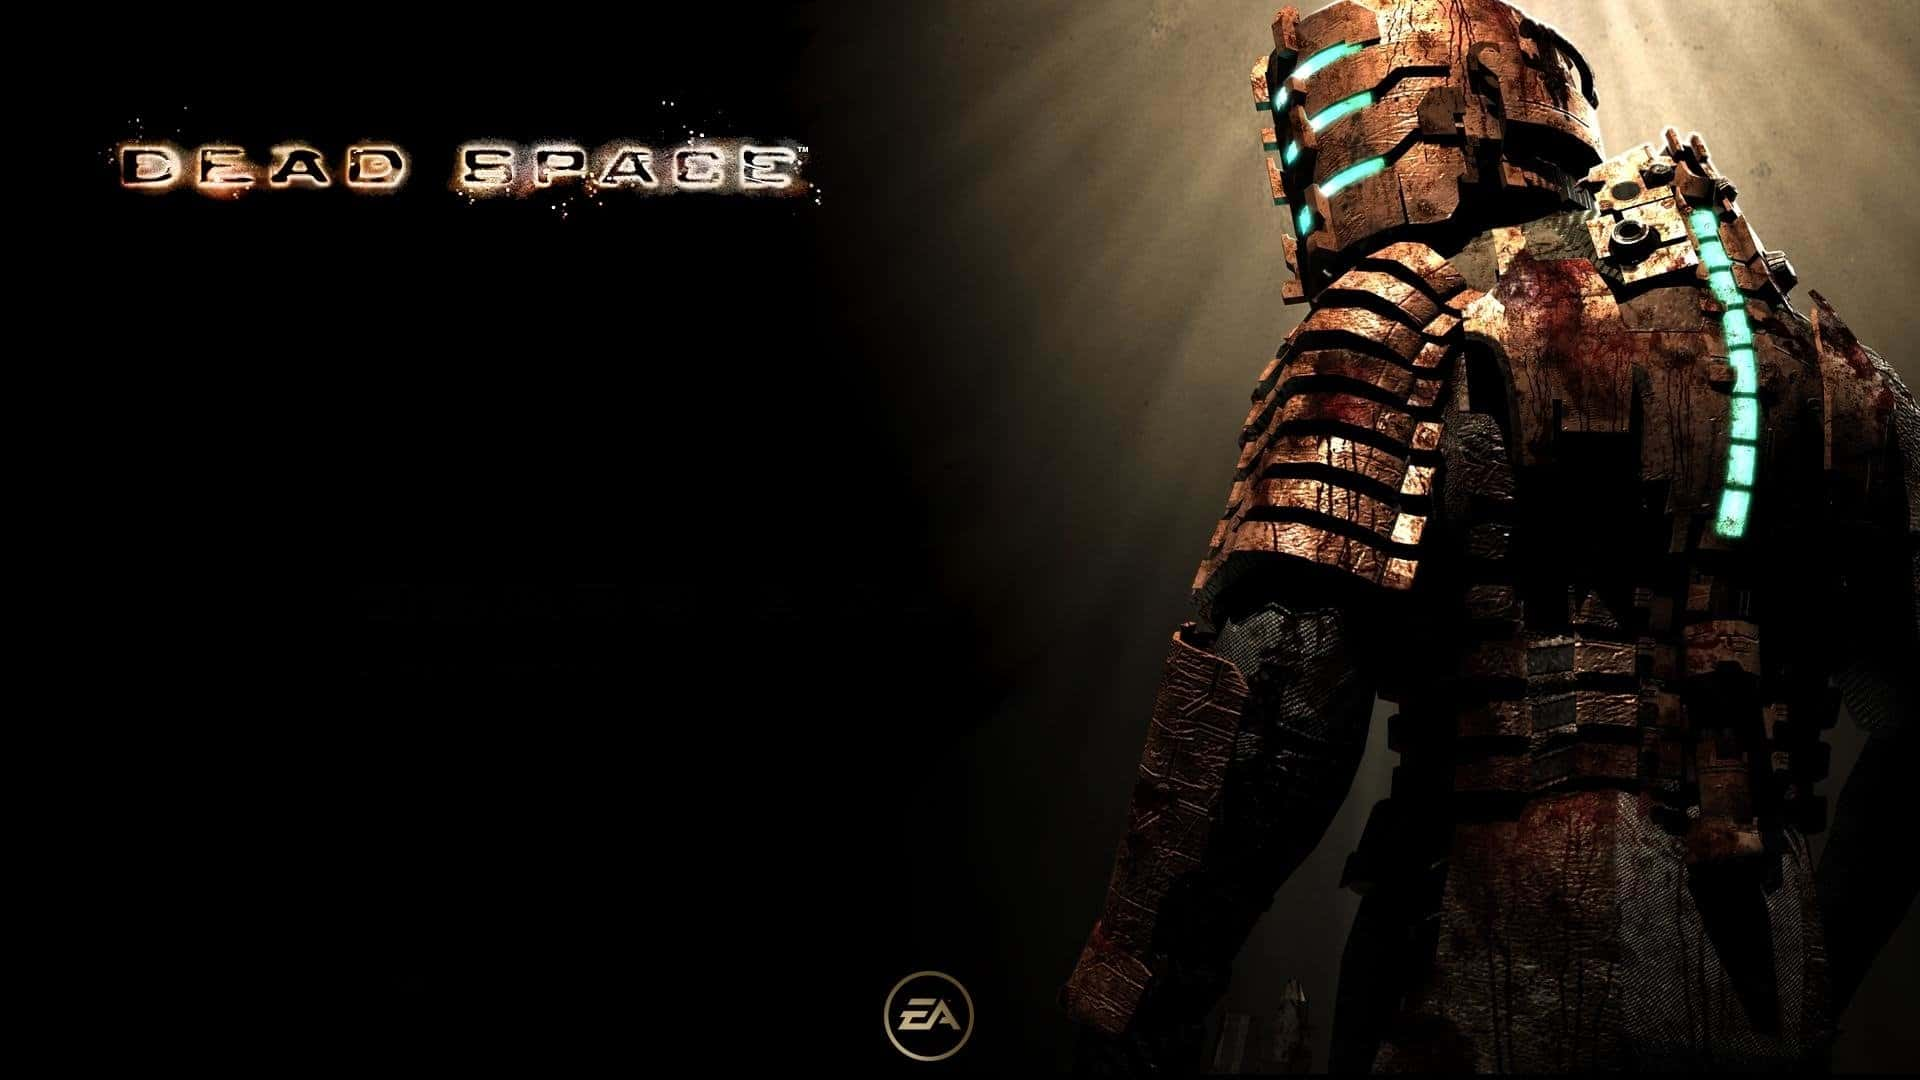 Dead Space Cover Poster